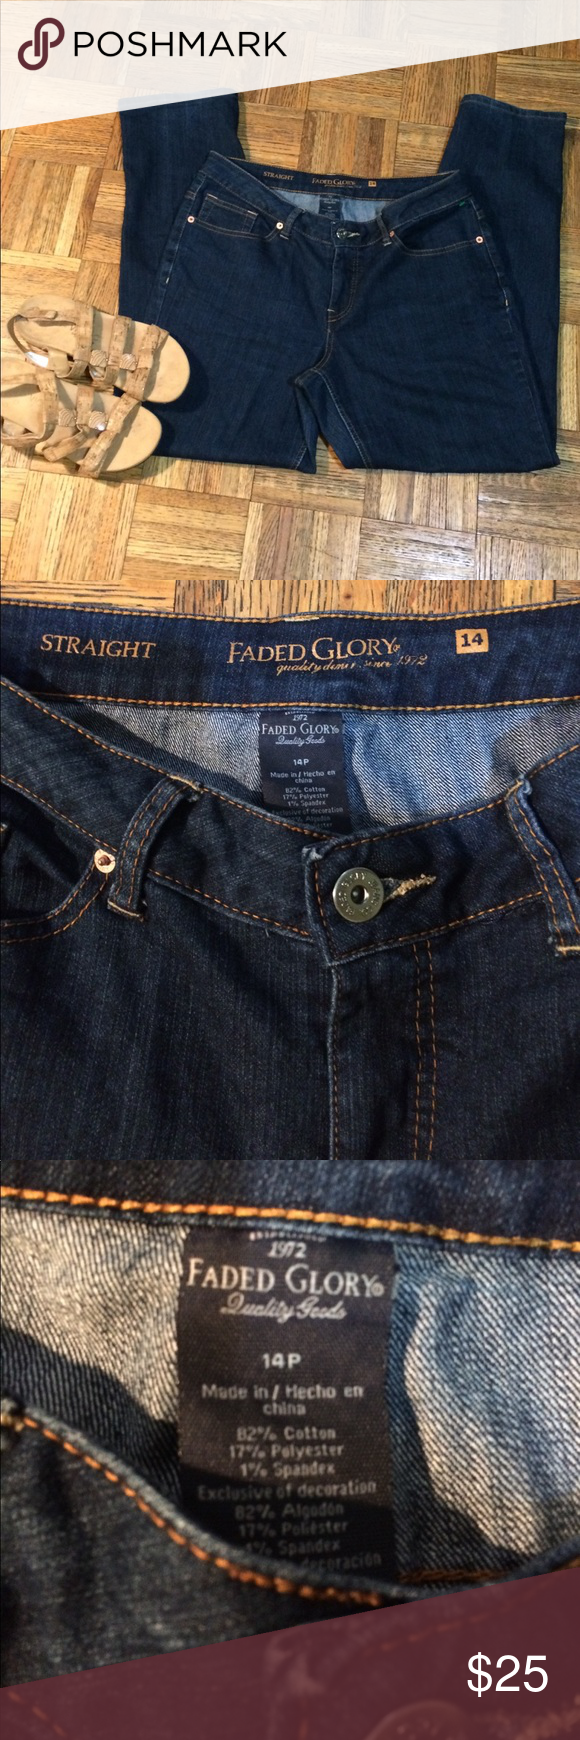 FEDED GLORY JEANS  SIZE 14p This is a very nice pair faded glory jeans 👖 size 14 Straight leg dimensions are waist  39 hips 42 inseam 29 length 39 ,these are straight leg jeans. feded glory Jeans Straight Leg